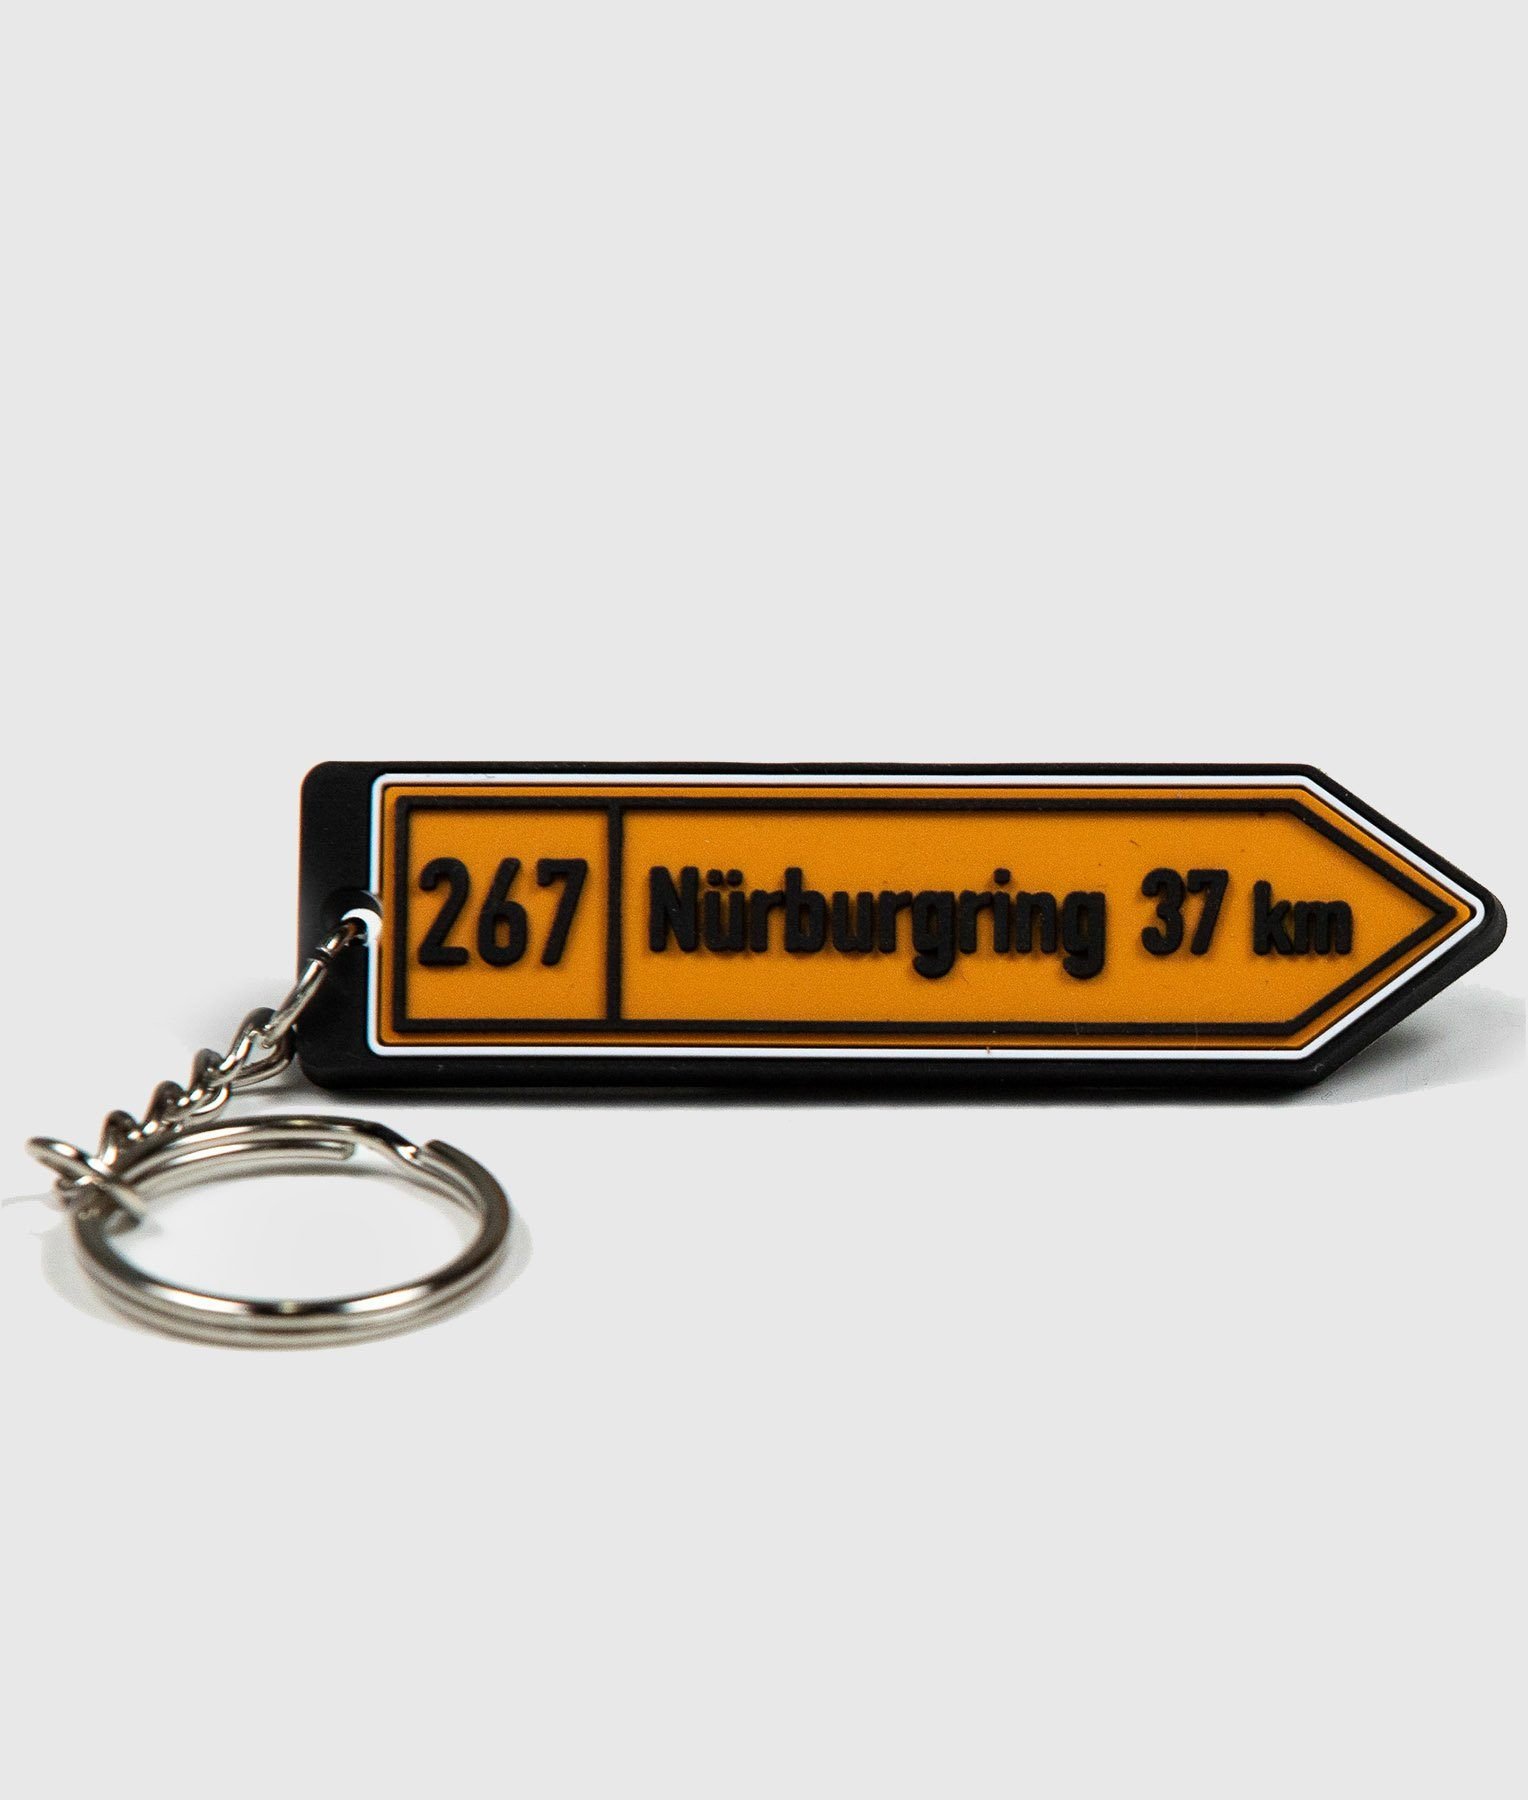 Nurburgring Soft Rubber Key Ring